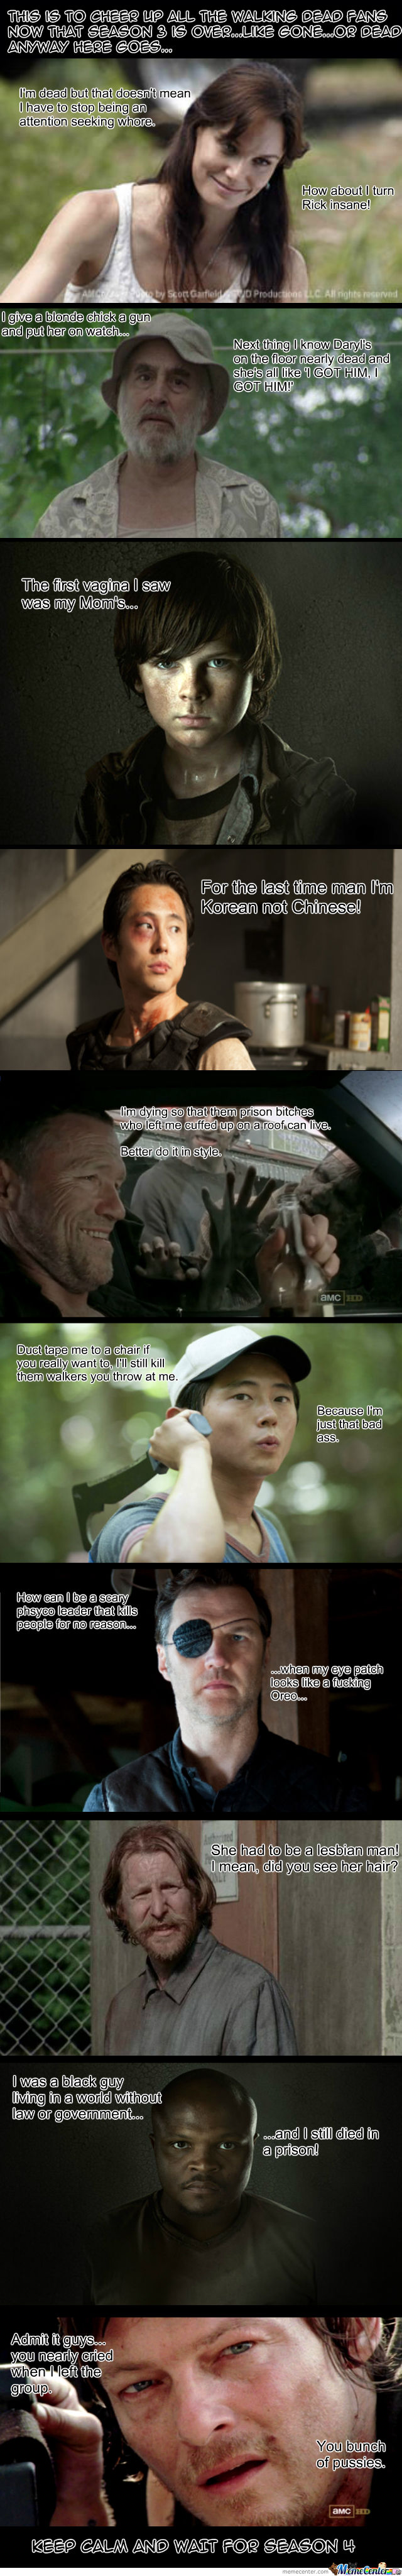 The Walking Dead. *beware Kind Of Long Meme Ahead*